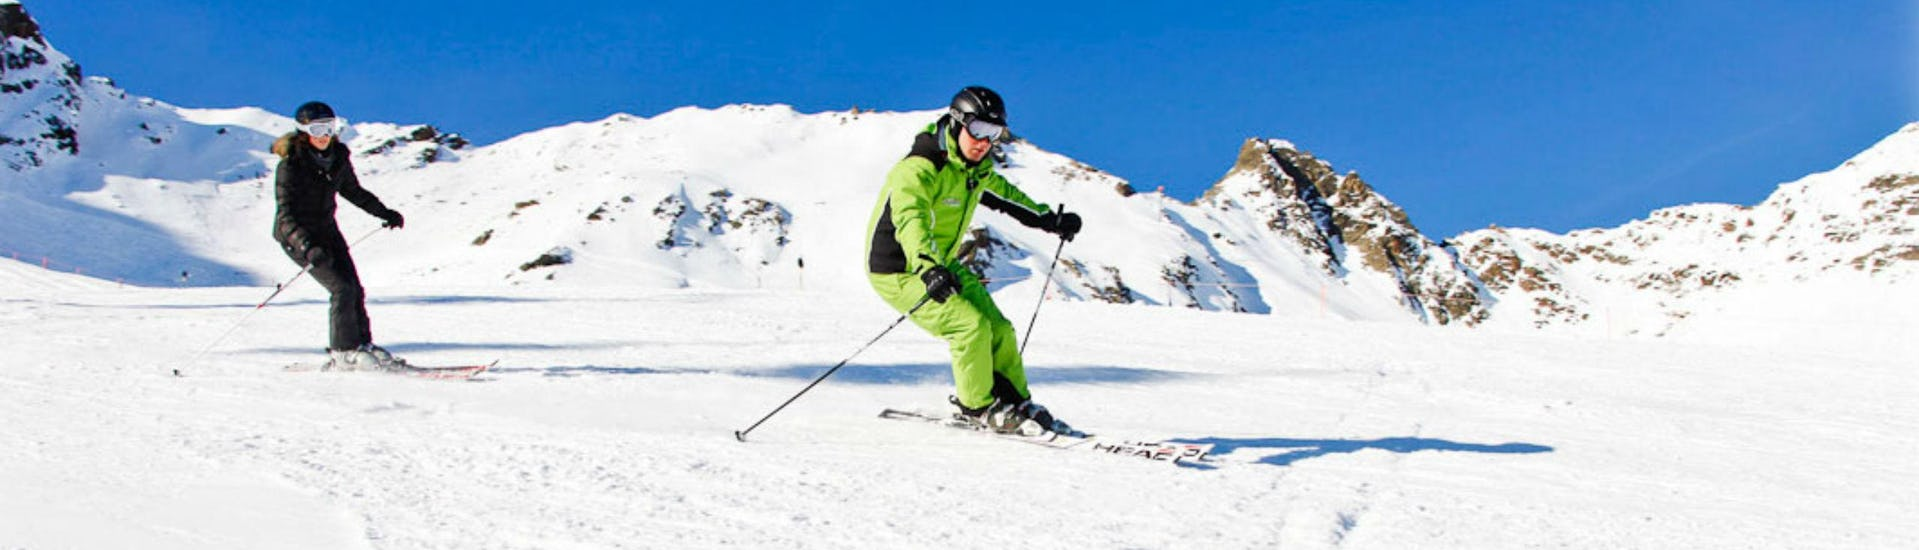 A female skier is following her ski instructor from the ski school Ski- und Bikeschule Ötztal Sölden during her Private Ski Lessons for Kids & Adults - All Levels.